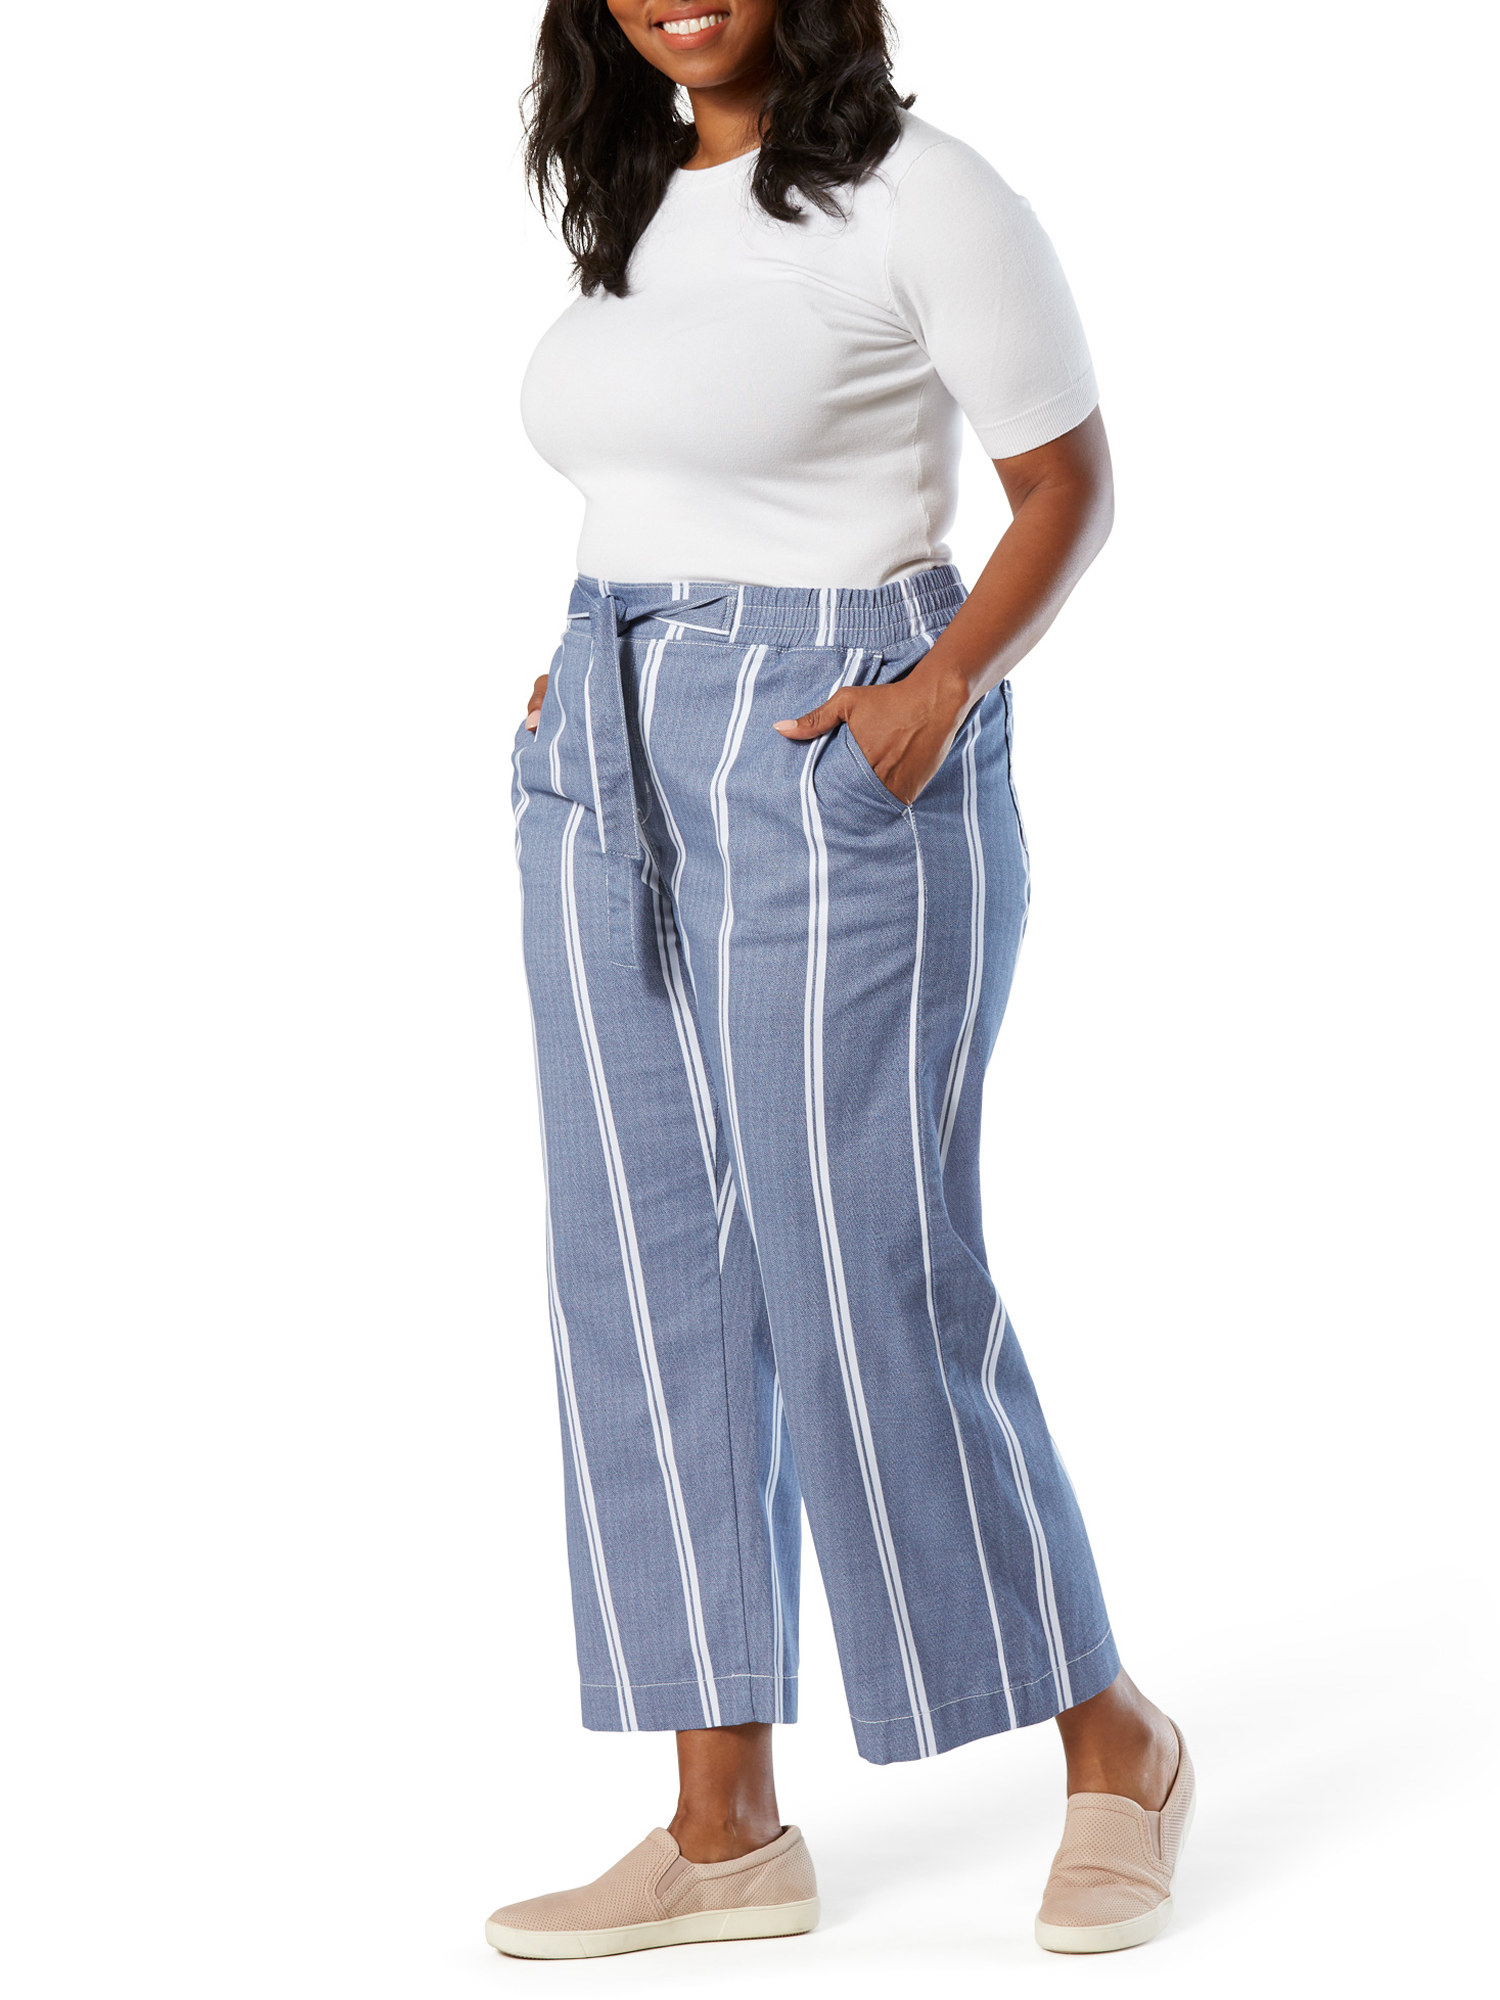 a model in blue linen pants with vertical white stripes